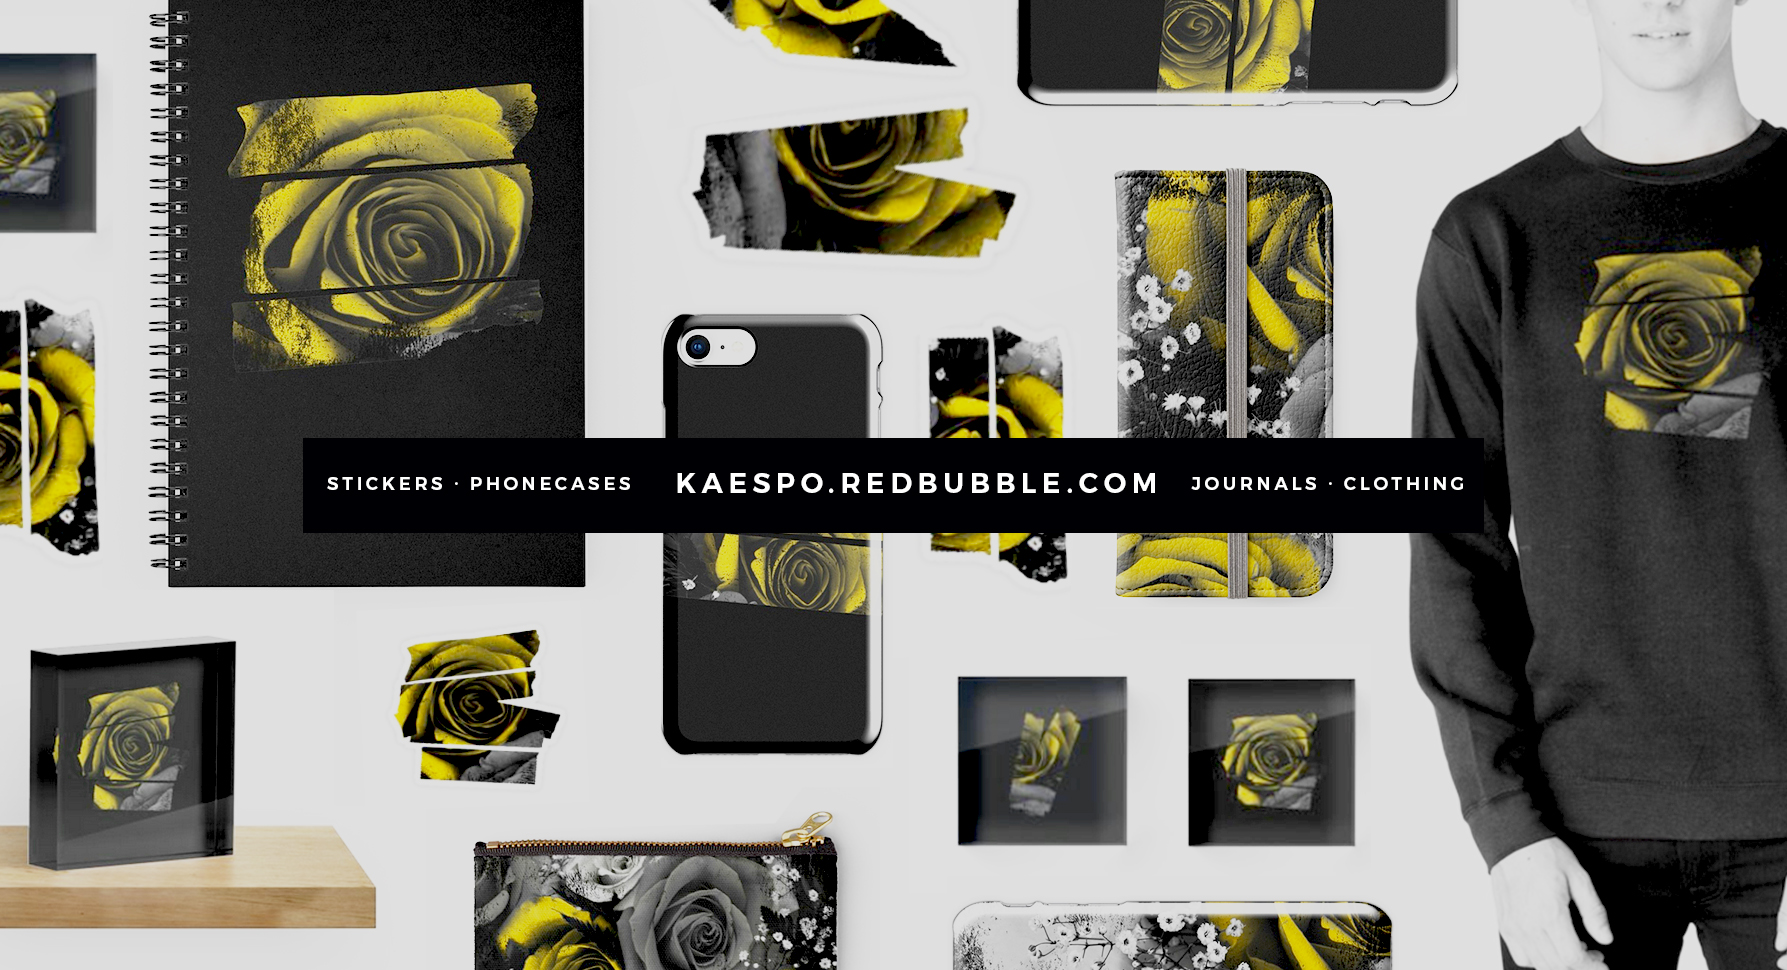 Trench Inspired Floral Designs and Stickers by KAESPO Design